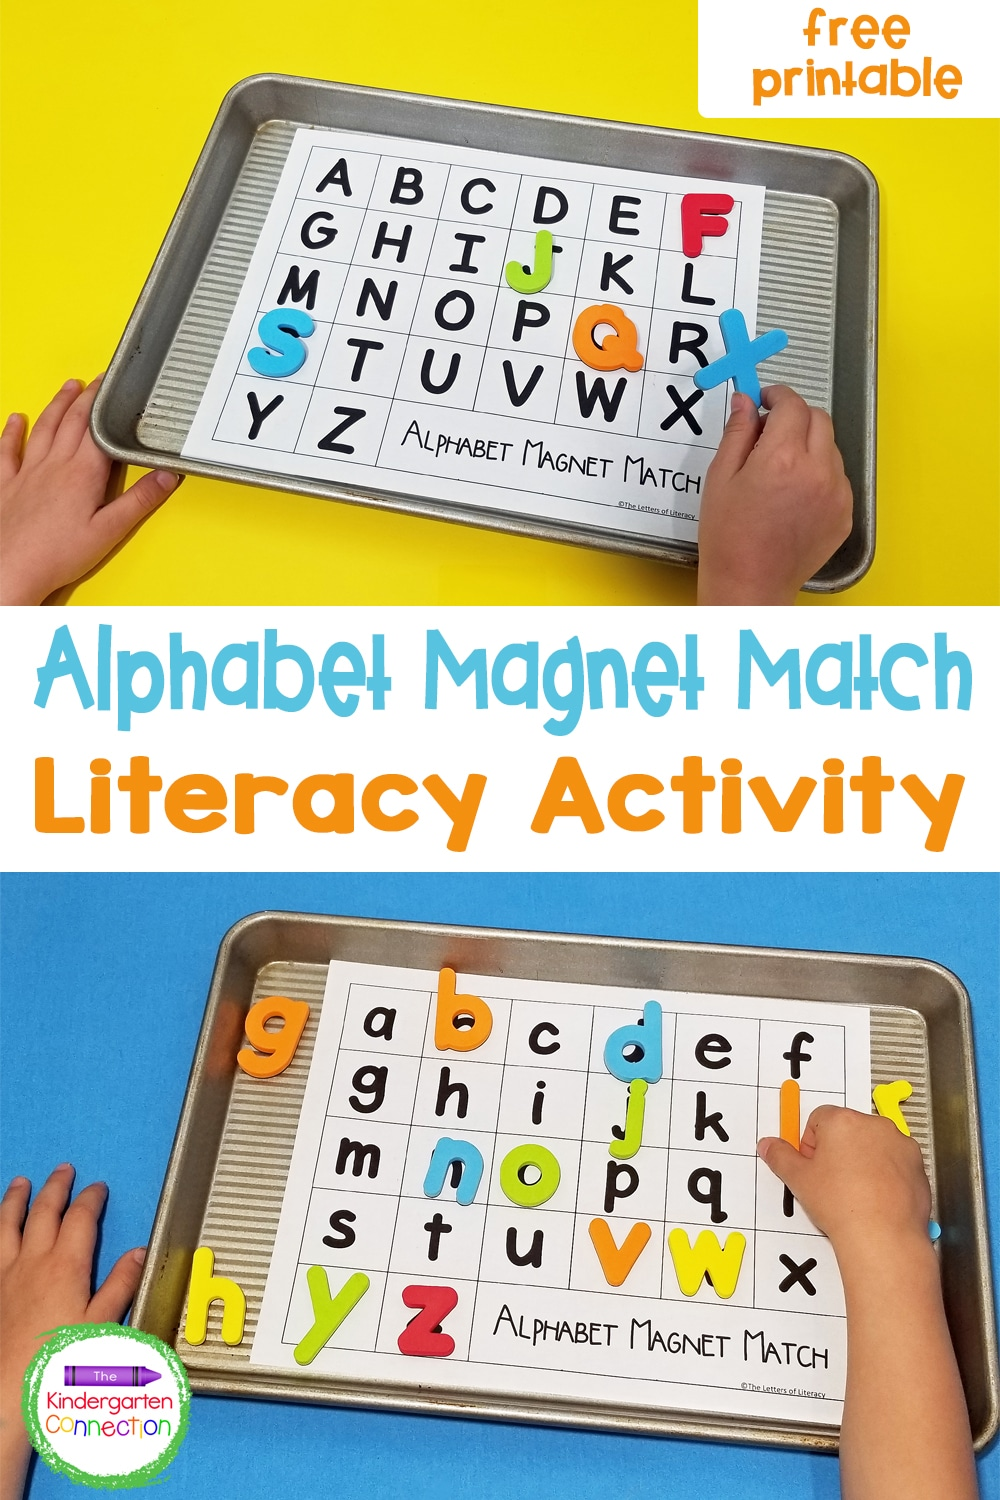 Make learning the alphabet fun and hands-on with this free printable Alphabet Magnet Match! Just grab some magnets and a cookie sheet!